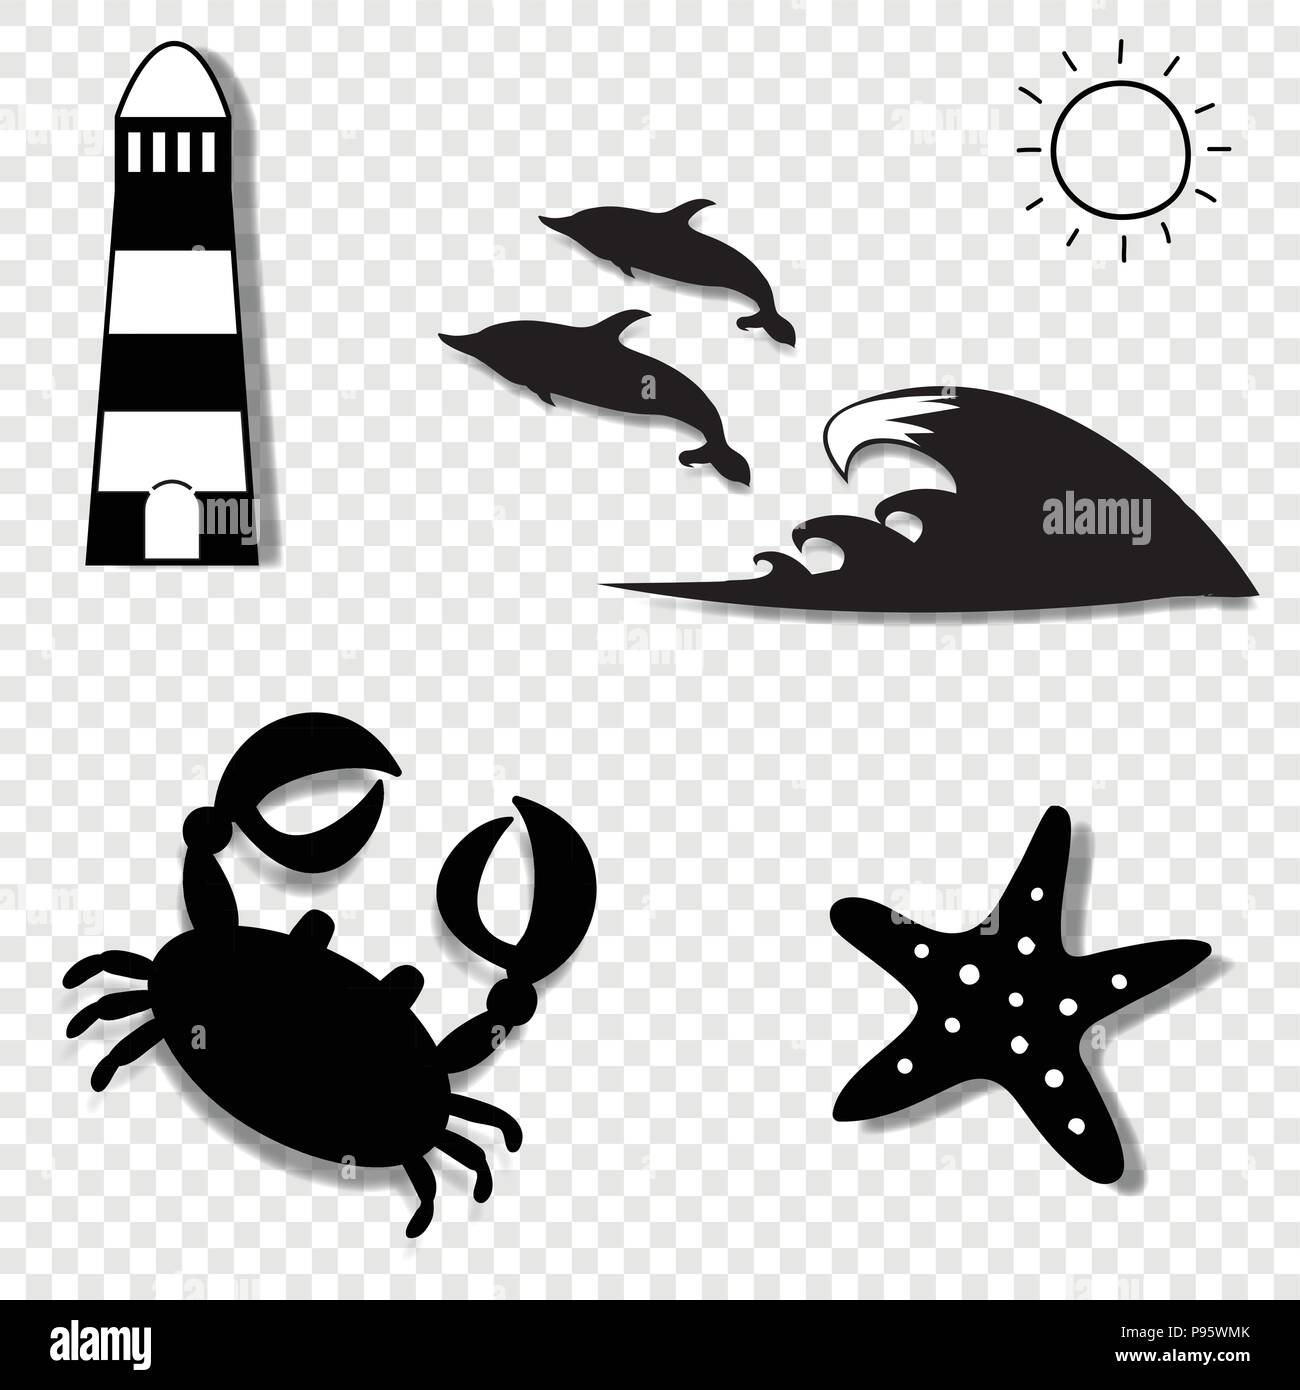 Vector Black And White Silhouette Illustration Of Summer